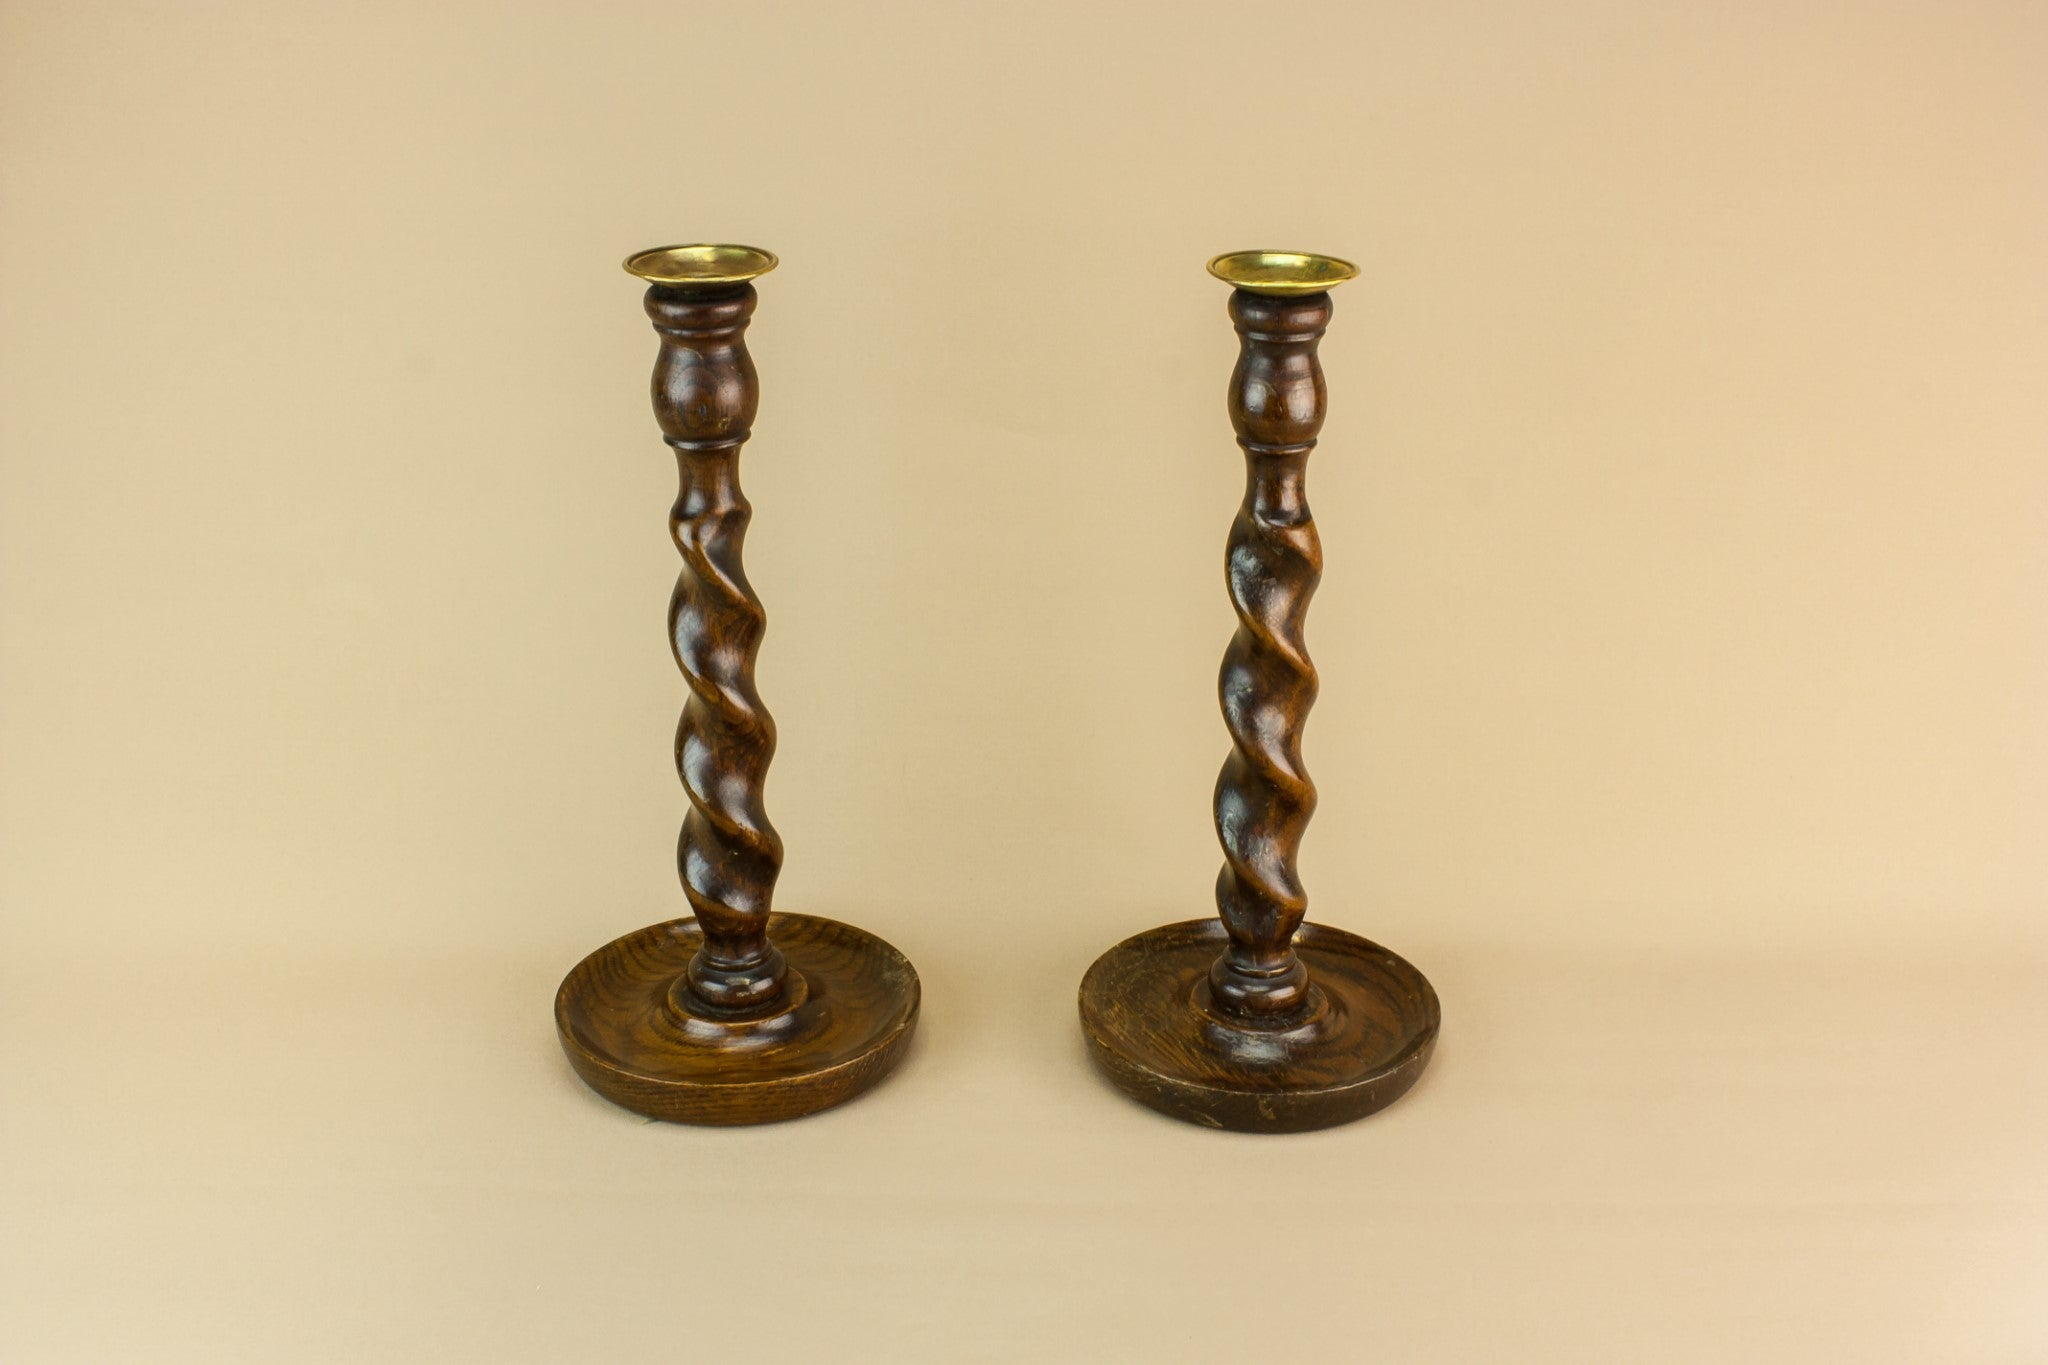 2 wooden tall candlesticks